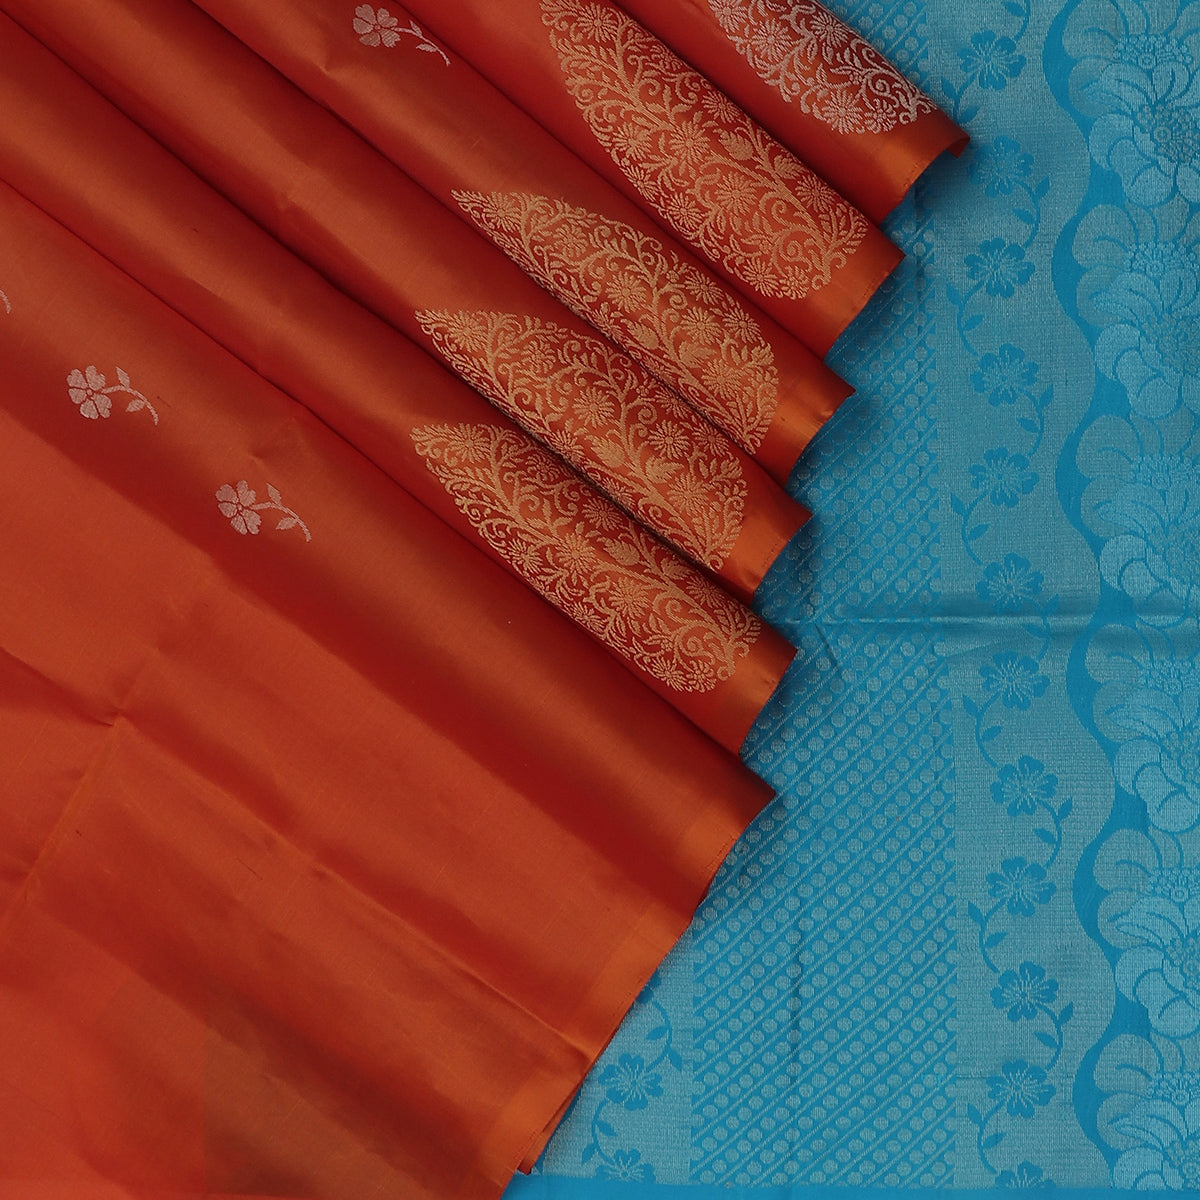 Soft Silk Saree Brick Orange with Flower buttas and silver Zari Border